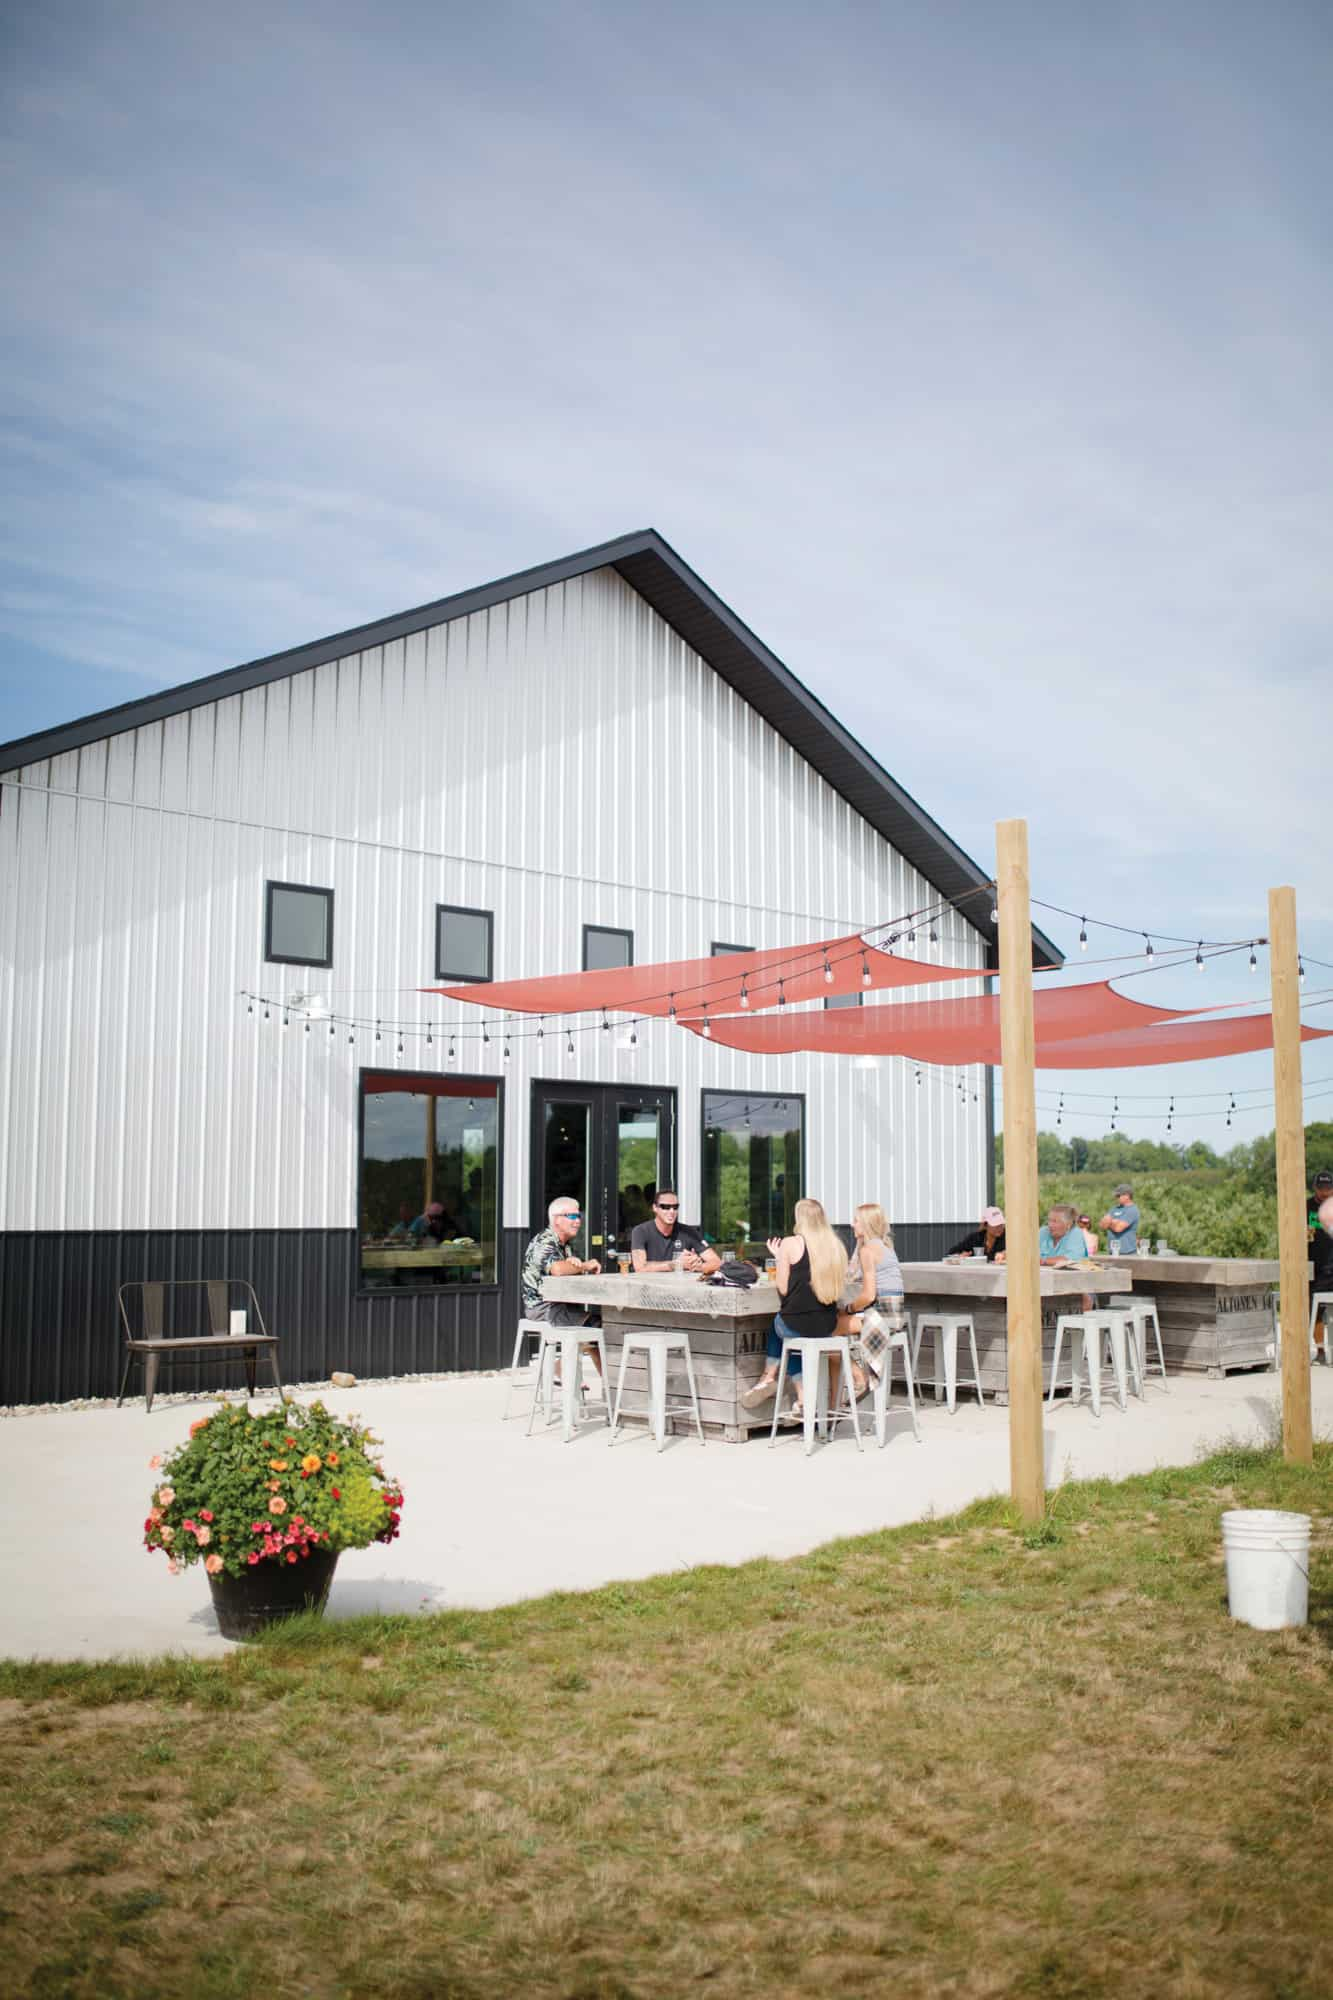 Image of Townline Ciderworks in Charlevoix Area.